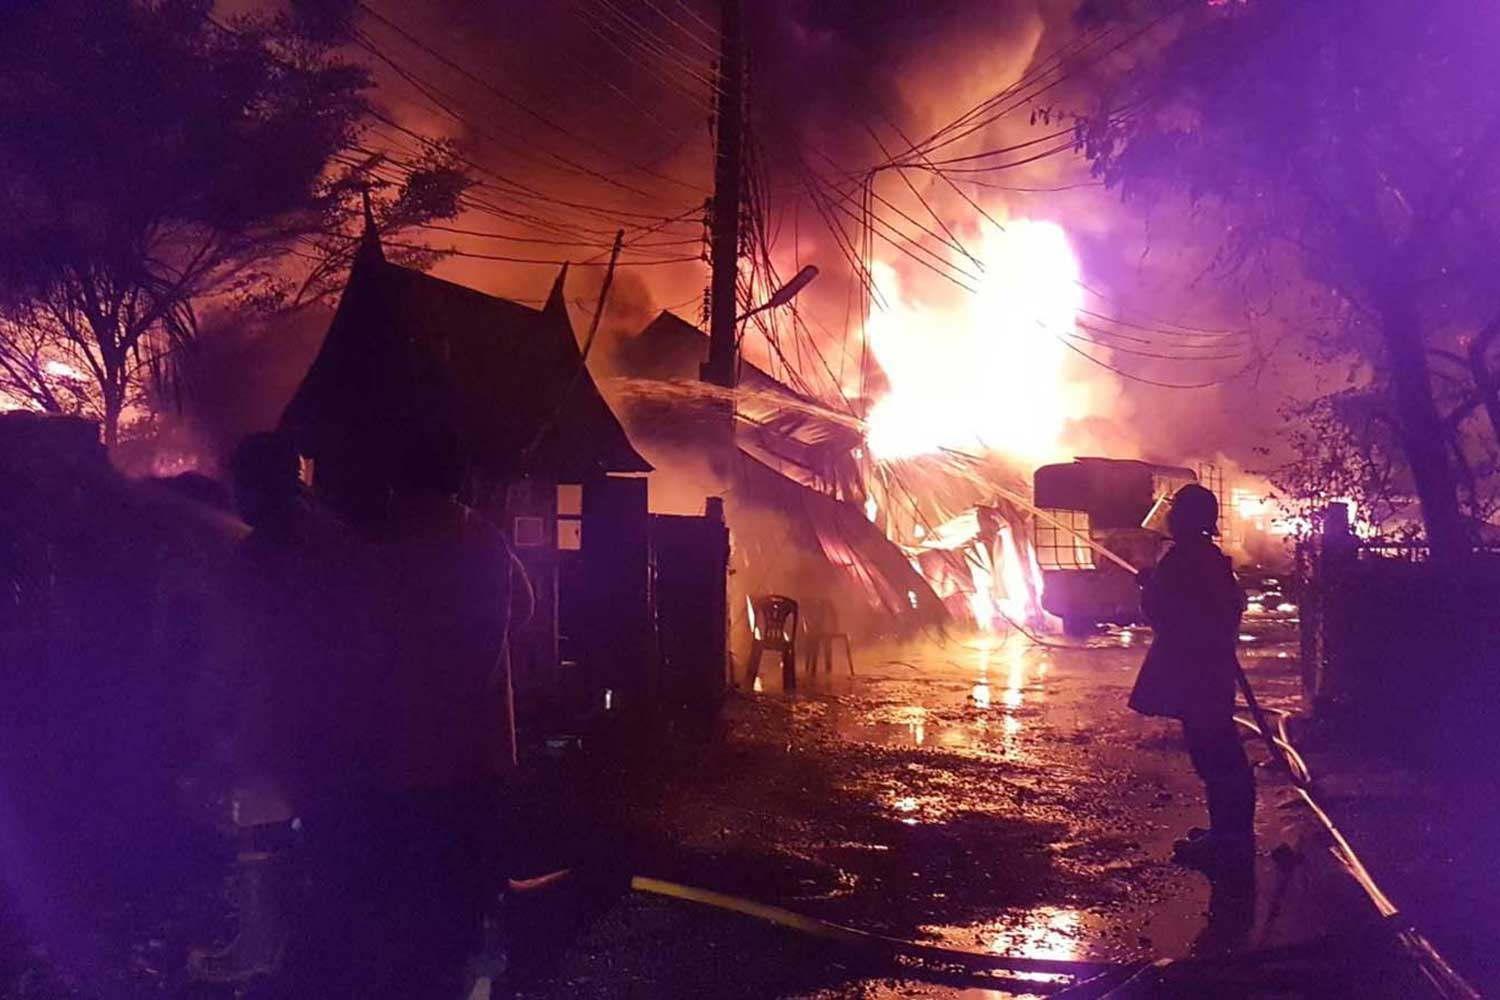 Firemen spray water onto a burning plastics factory in Samut Prakan's Muang district in the early hours of Saturday. (Photo by Sutthiwit Chayutworakan)